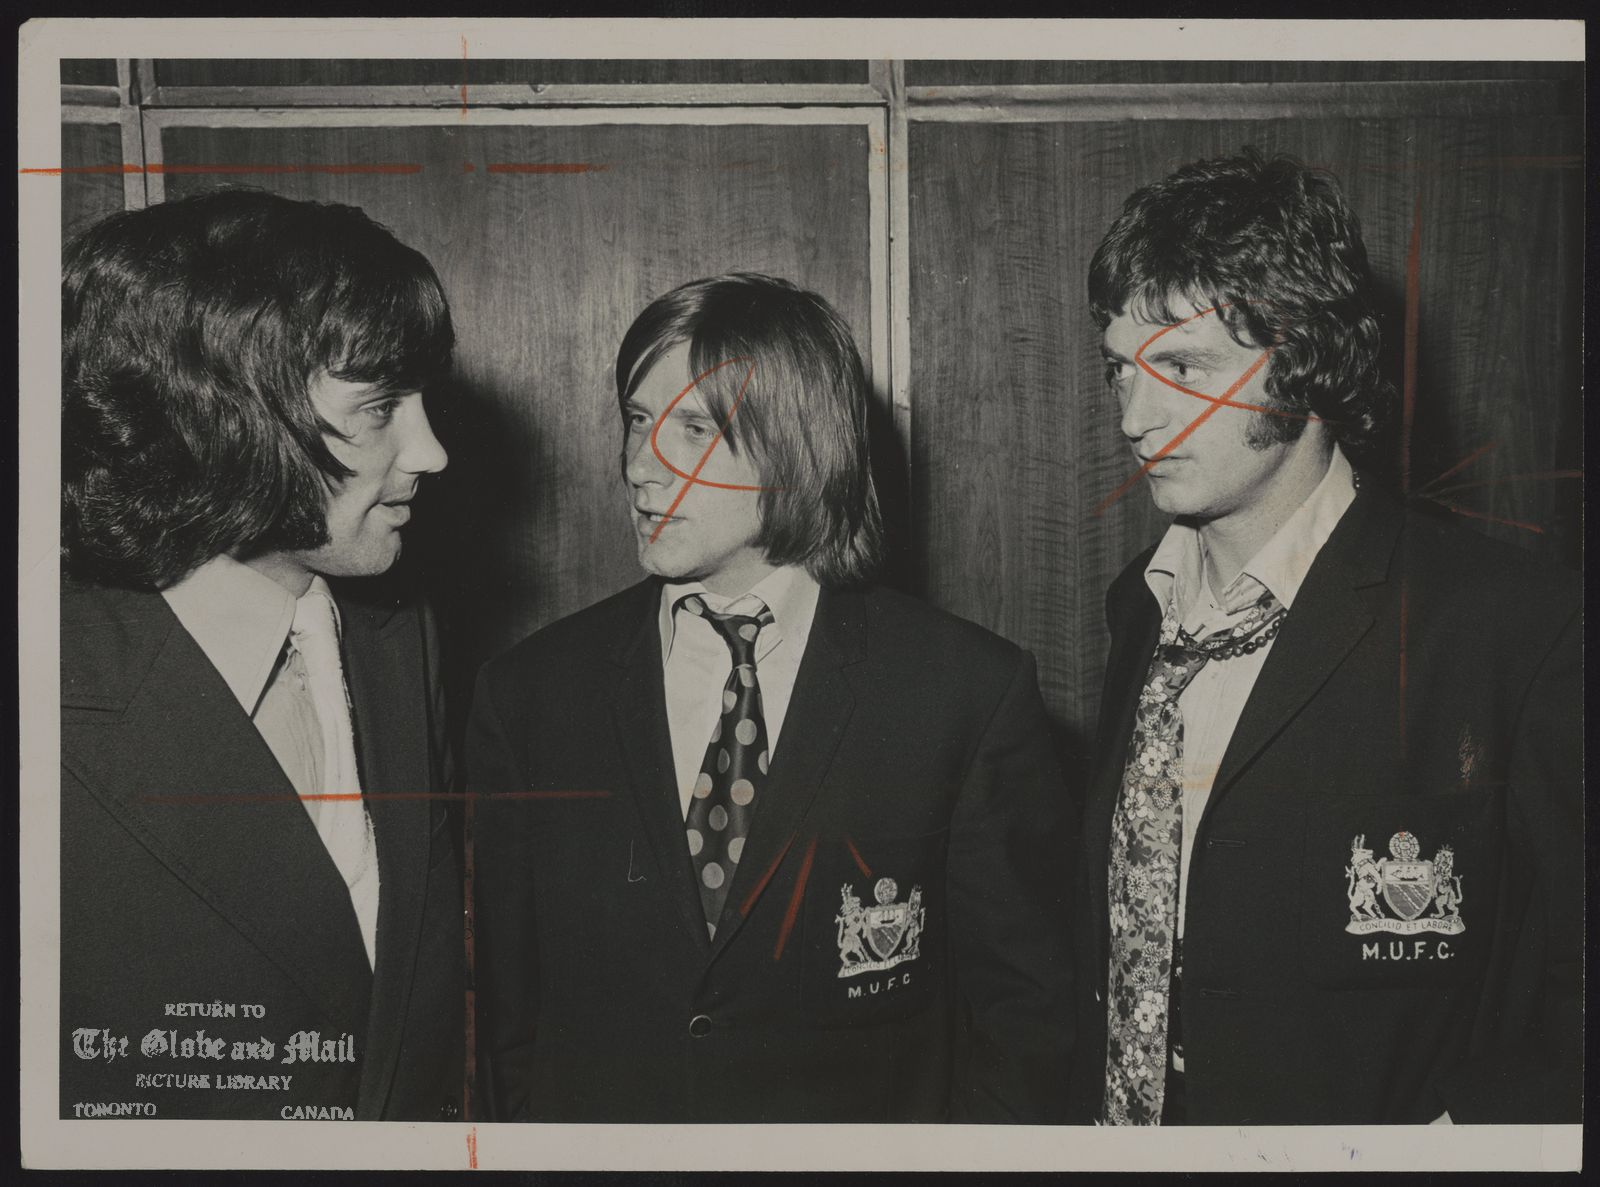 George BEST Soccer Gt. Britain George Best, left, John Fitzpatrick and Willie Morgan of Manchester United show mod look of soccer.